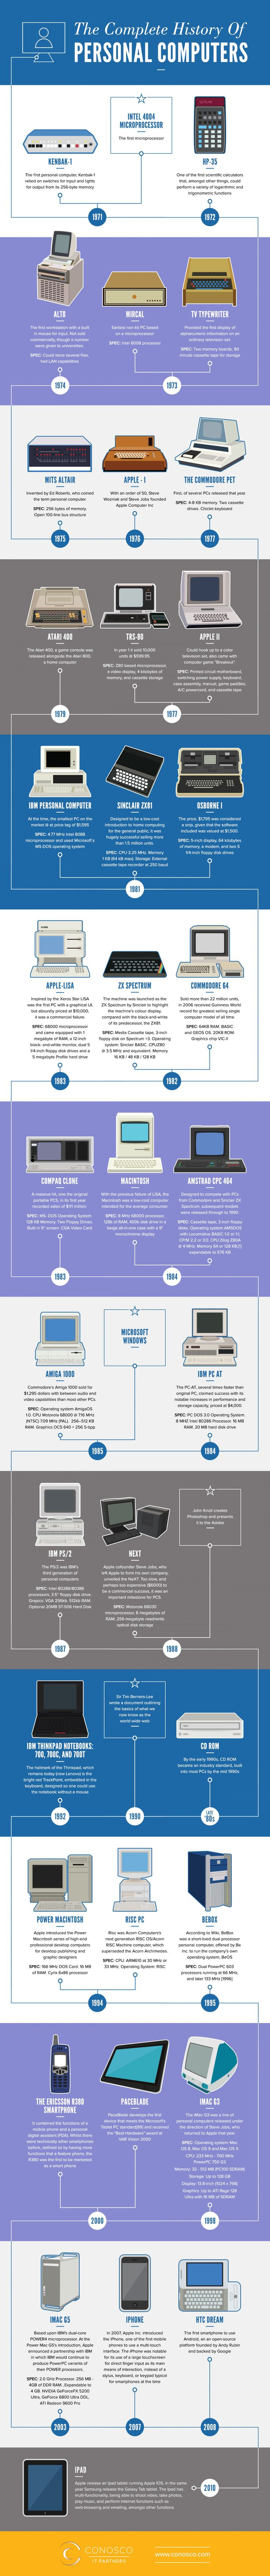 best ideas about history of computing computers the complete history of personal computers infographic more